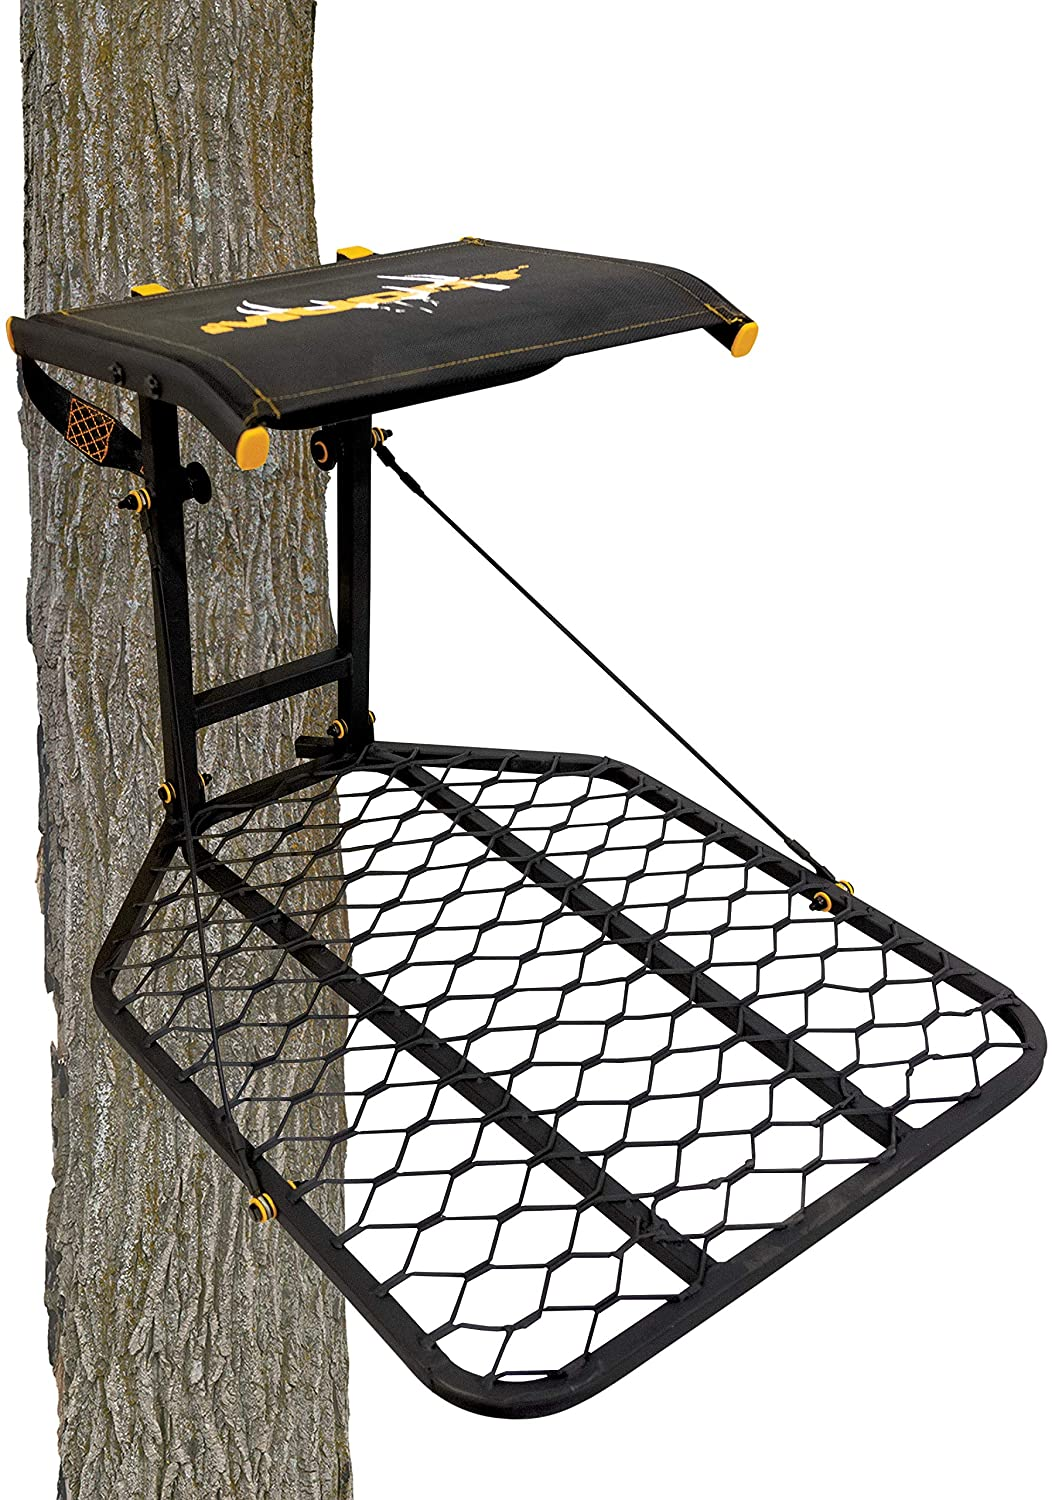 Muddy The Boss Hang-On Treestand- Silent Straps, Flex-Tek Comfort Seating, Extra Wide Platform, Black (MUD-MFP1080)